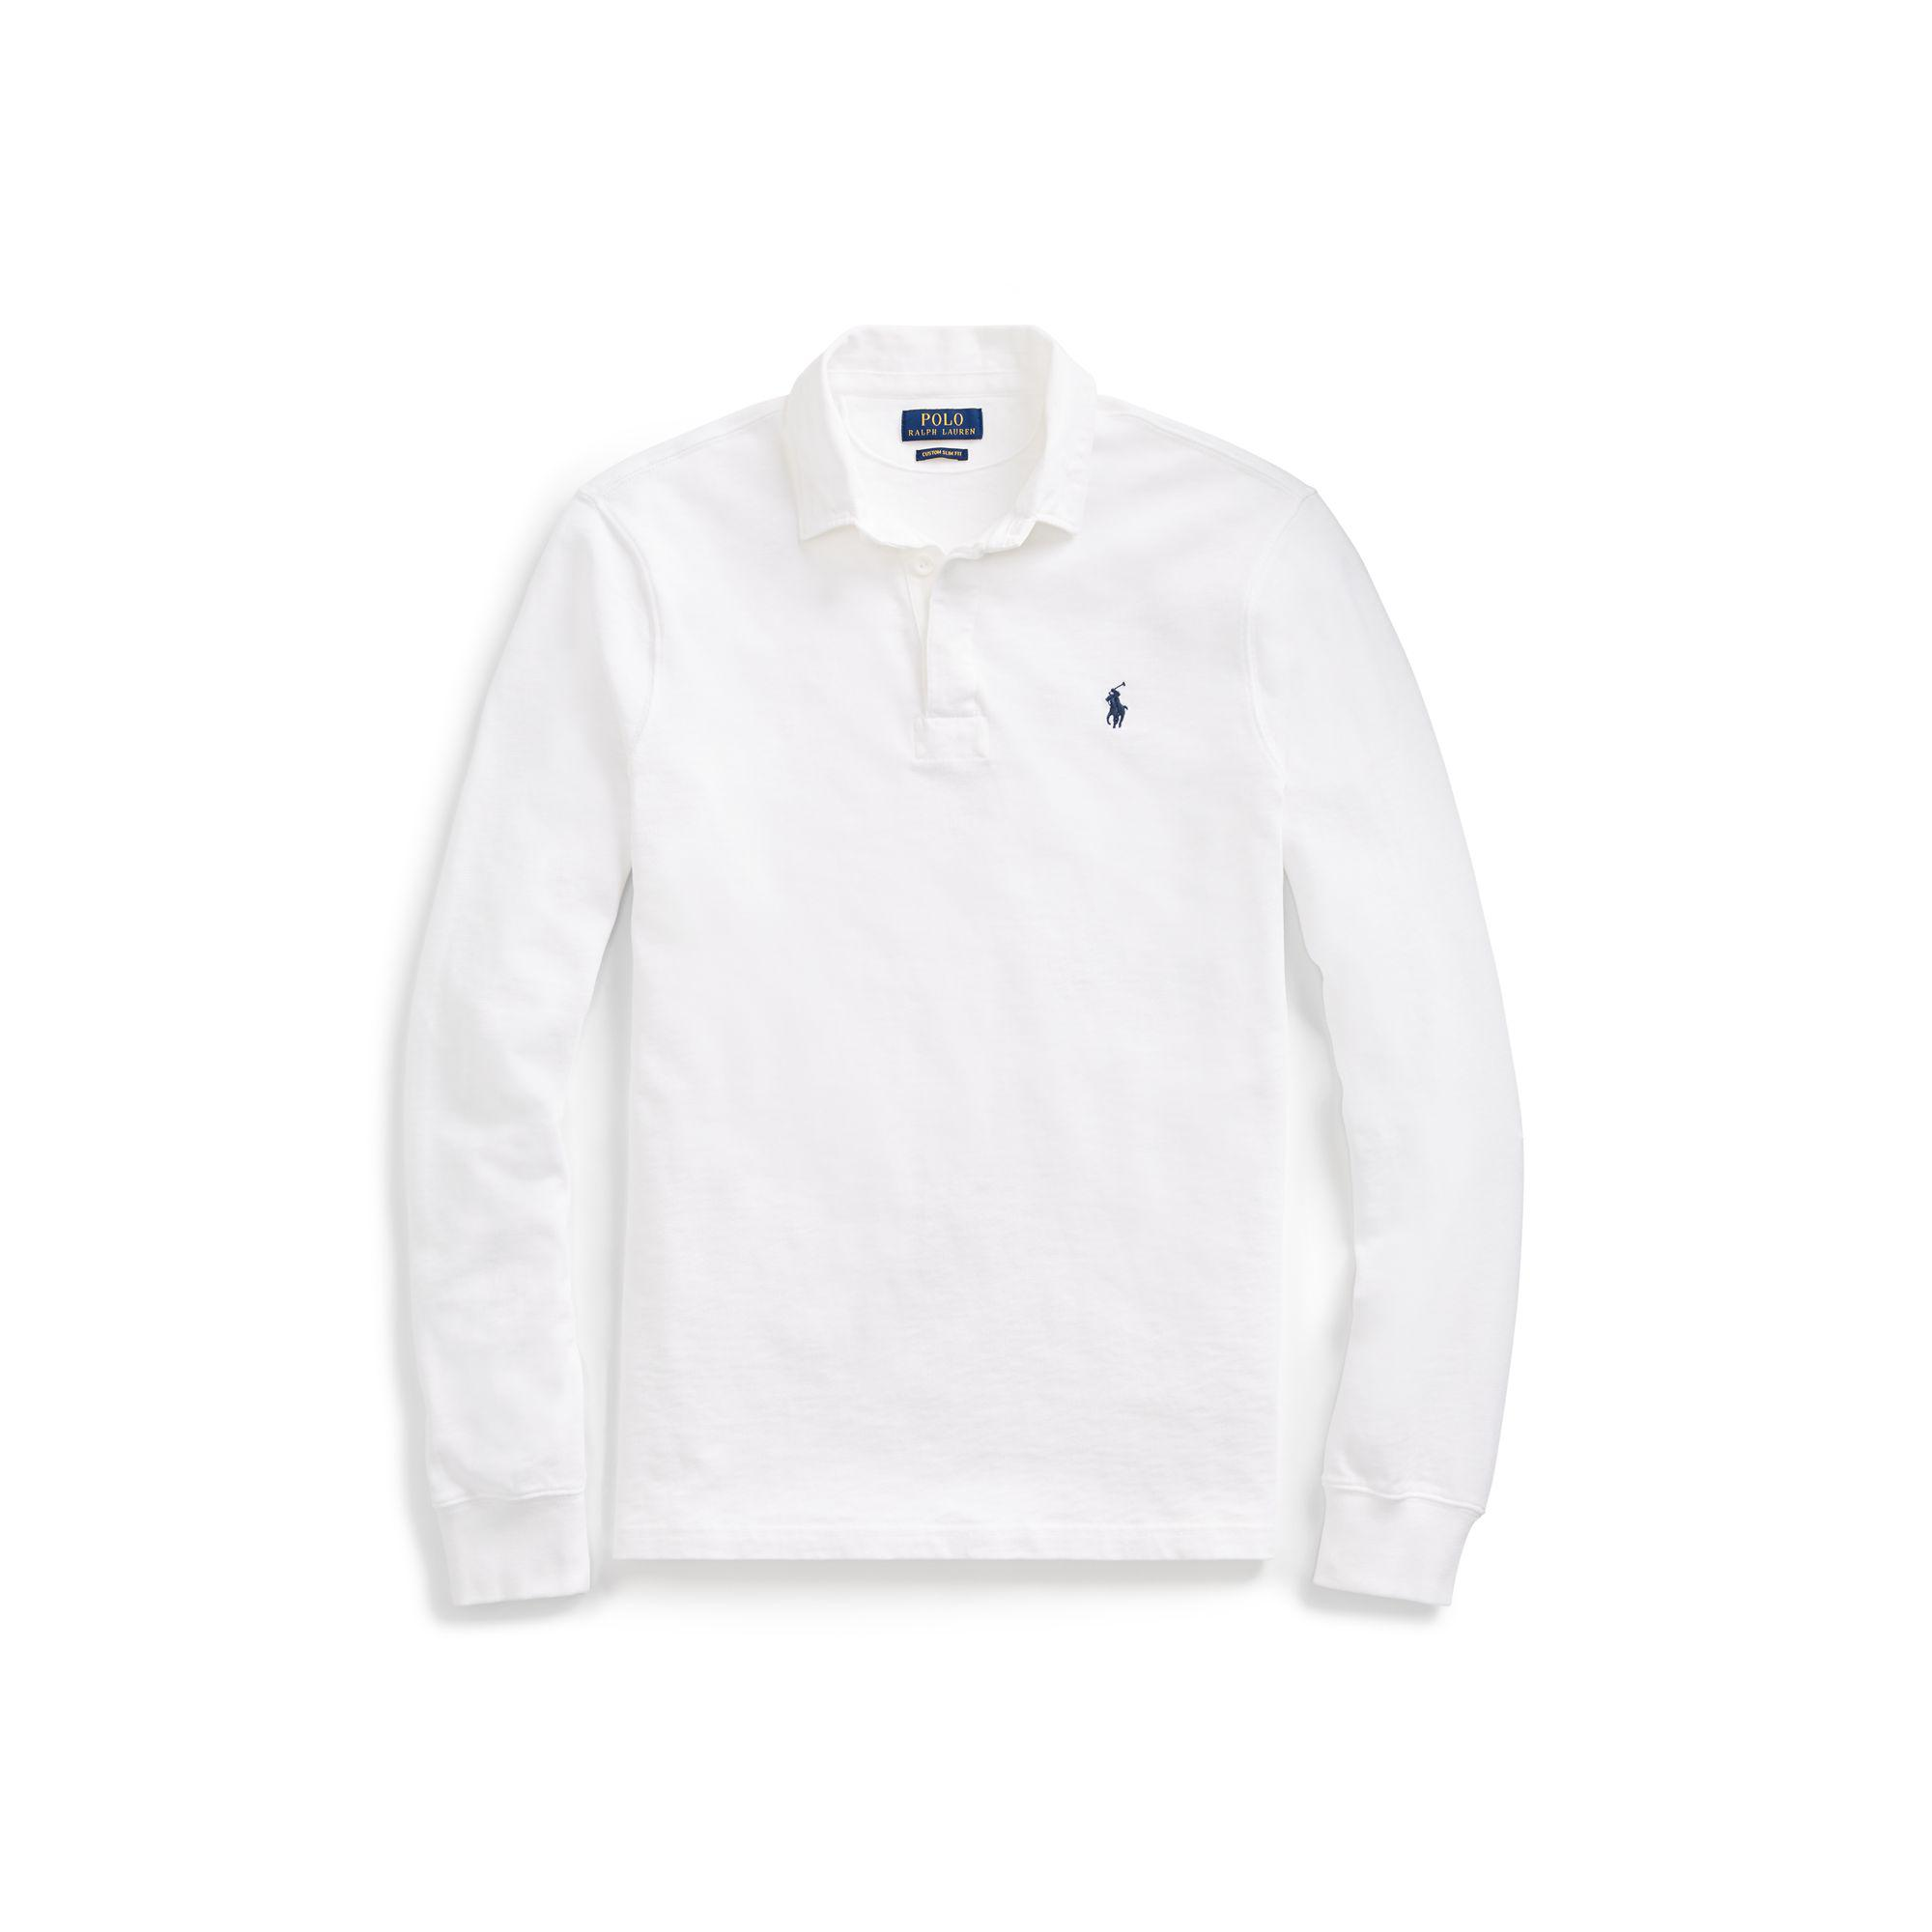 22a0baef7 ... buy ralph lauren polo shirt lyst polo ralph lauren the iconic rugby  shirt in white for